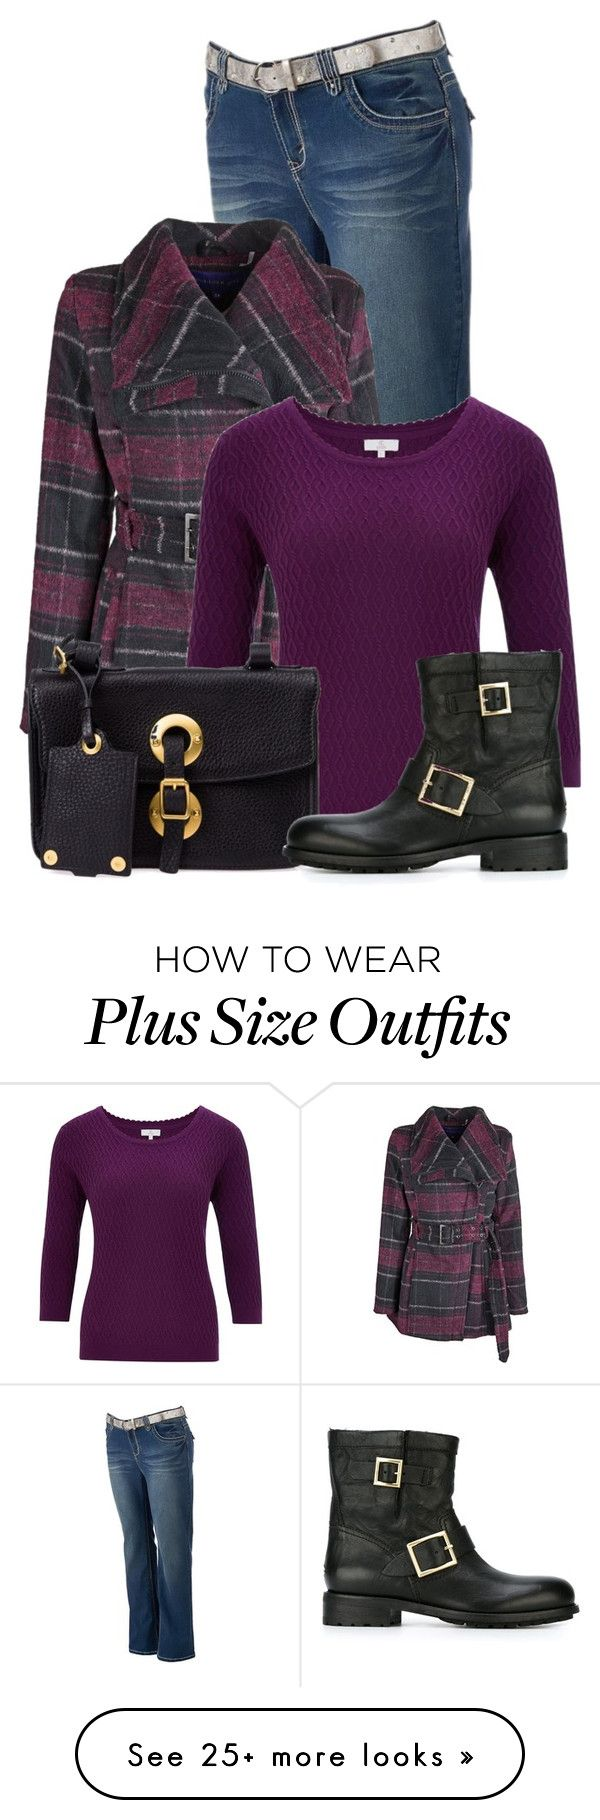 """Untitled #12920"" by nanette-253 on Polyvore featuring Steve Madden, CC, Valentino and Jimmy Choo"